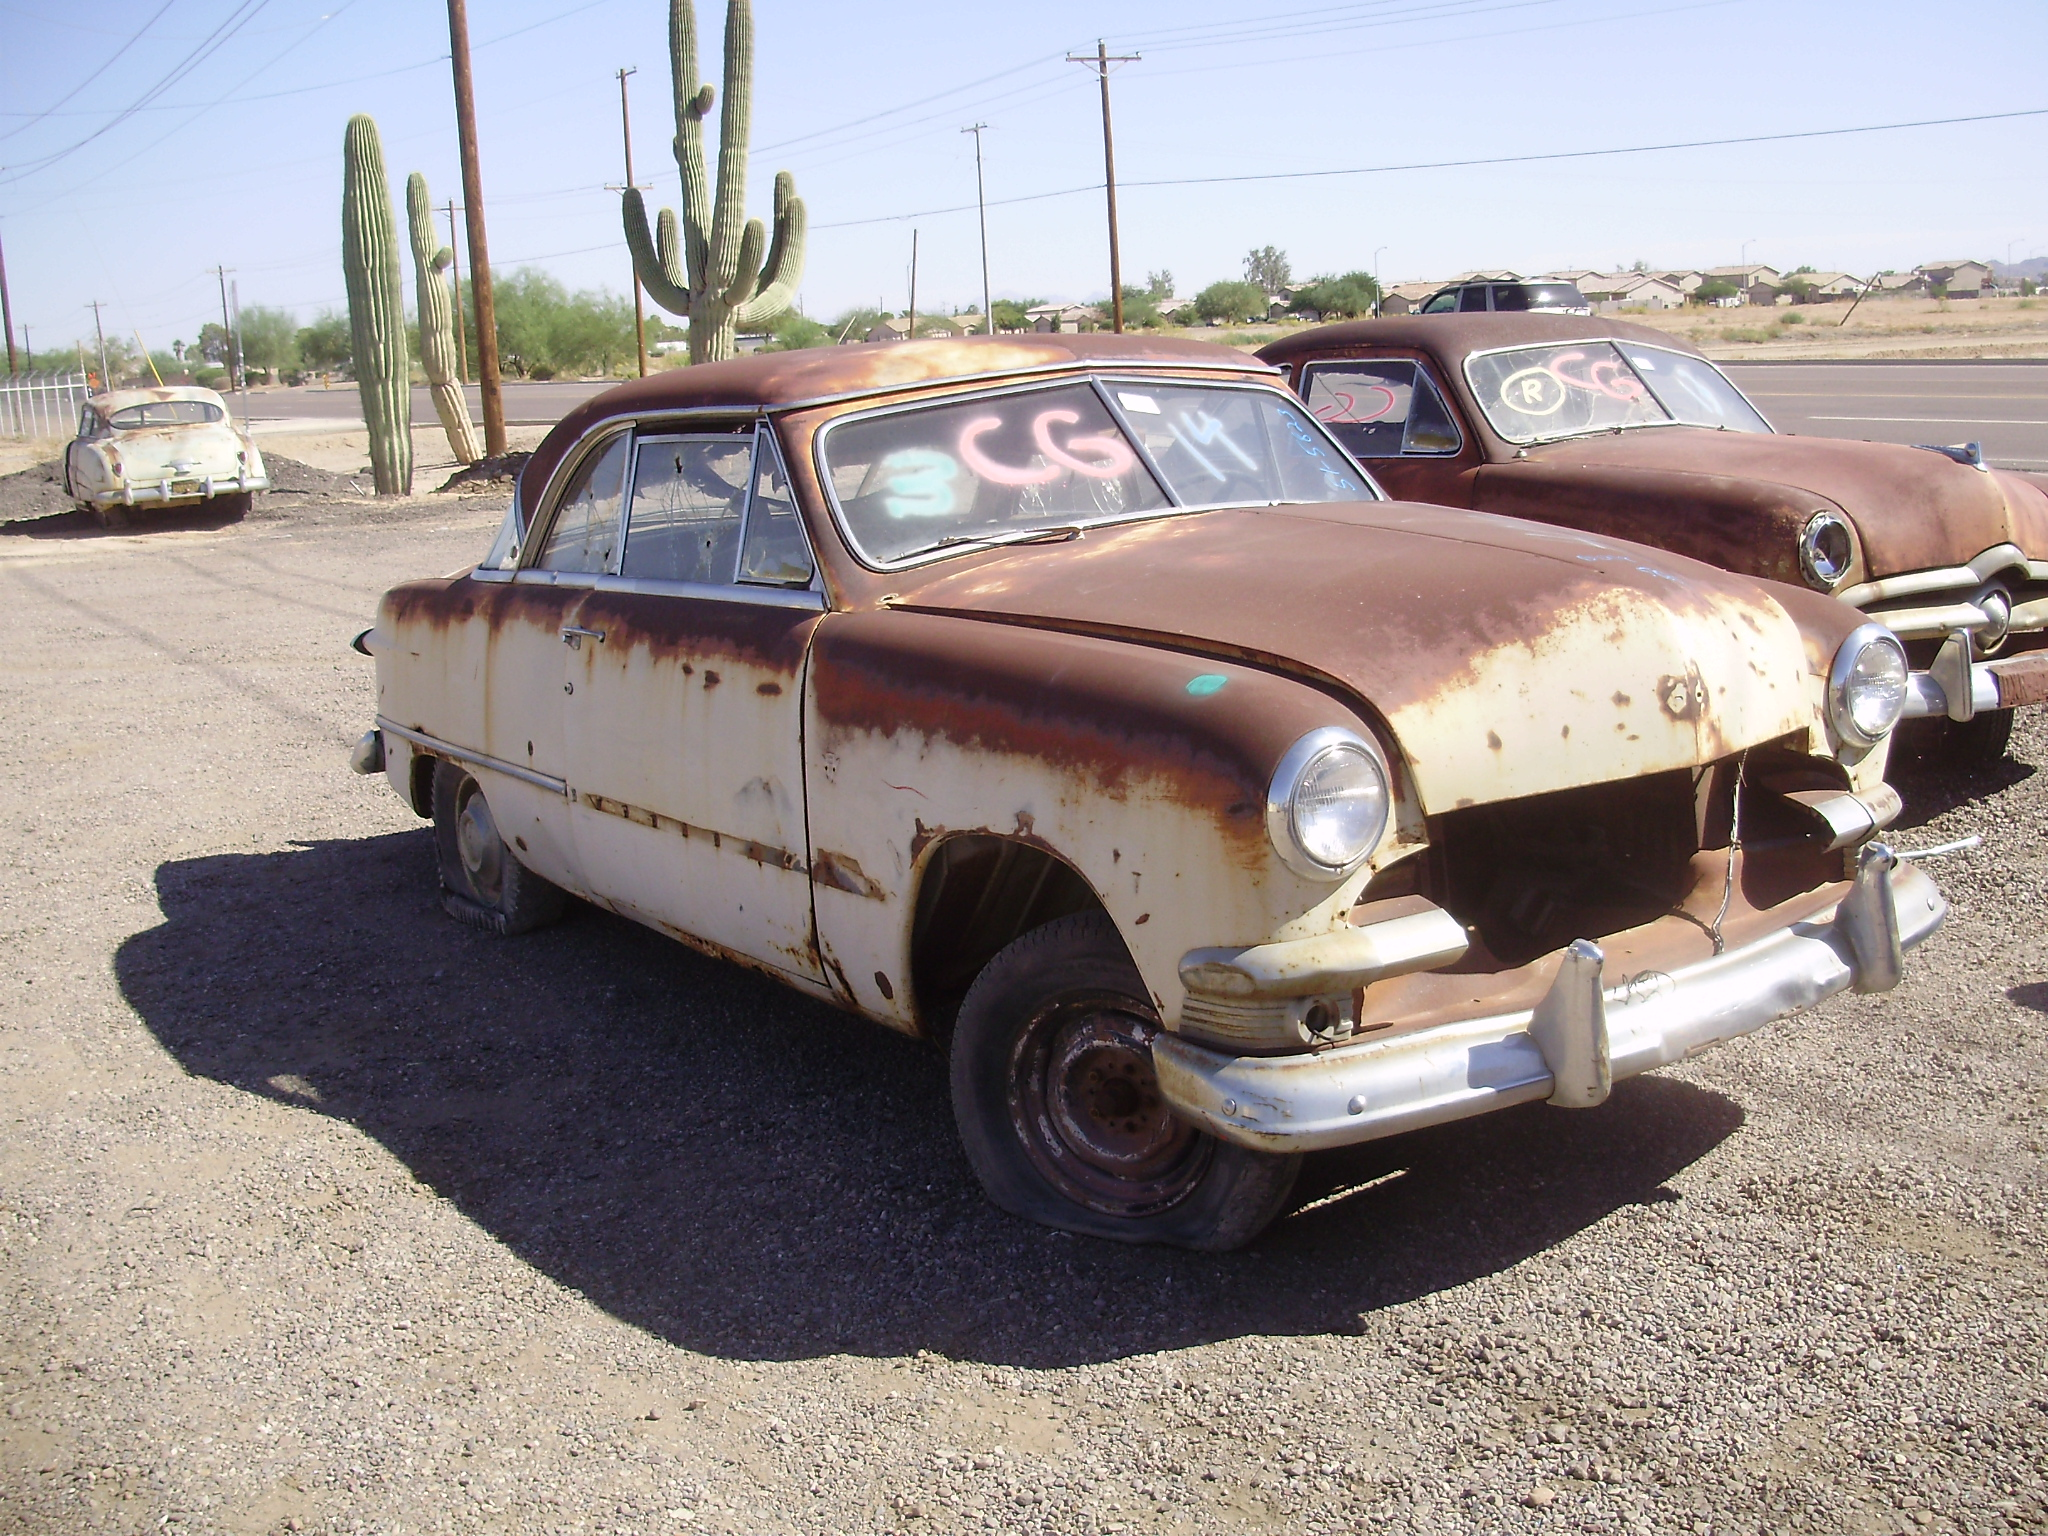 1951 Ford Ford Car (#51FO5823C) | Desert Valley Auto Parts - photo#31